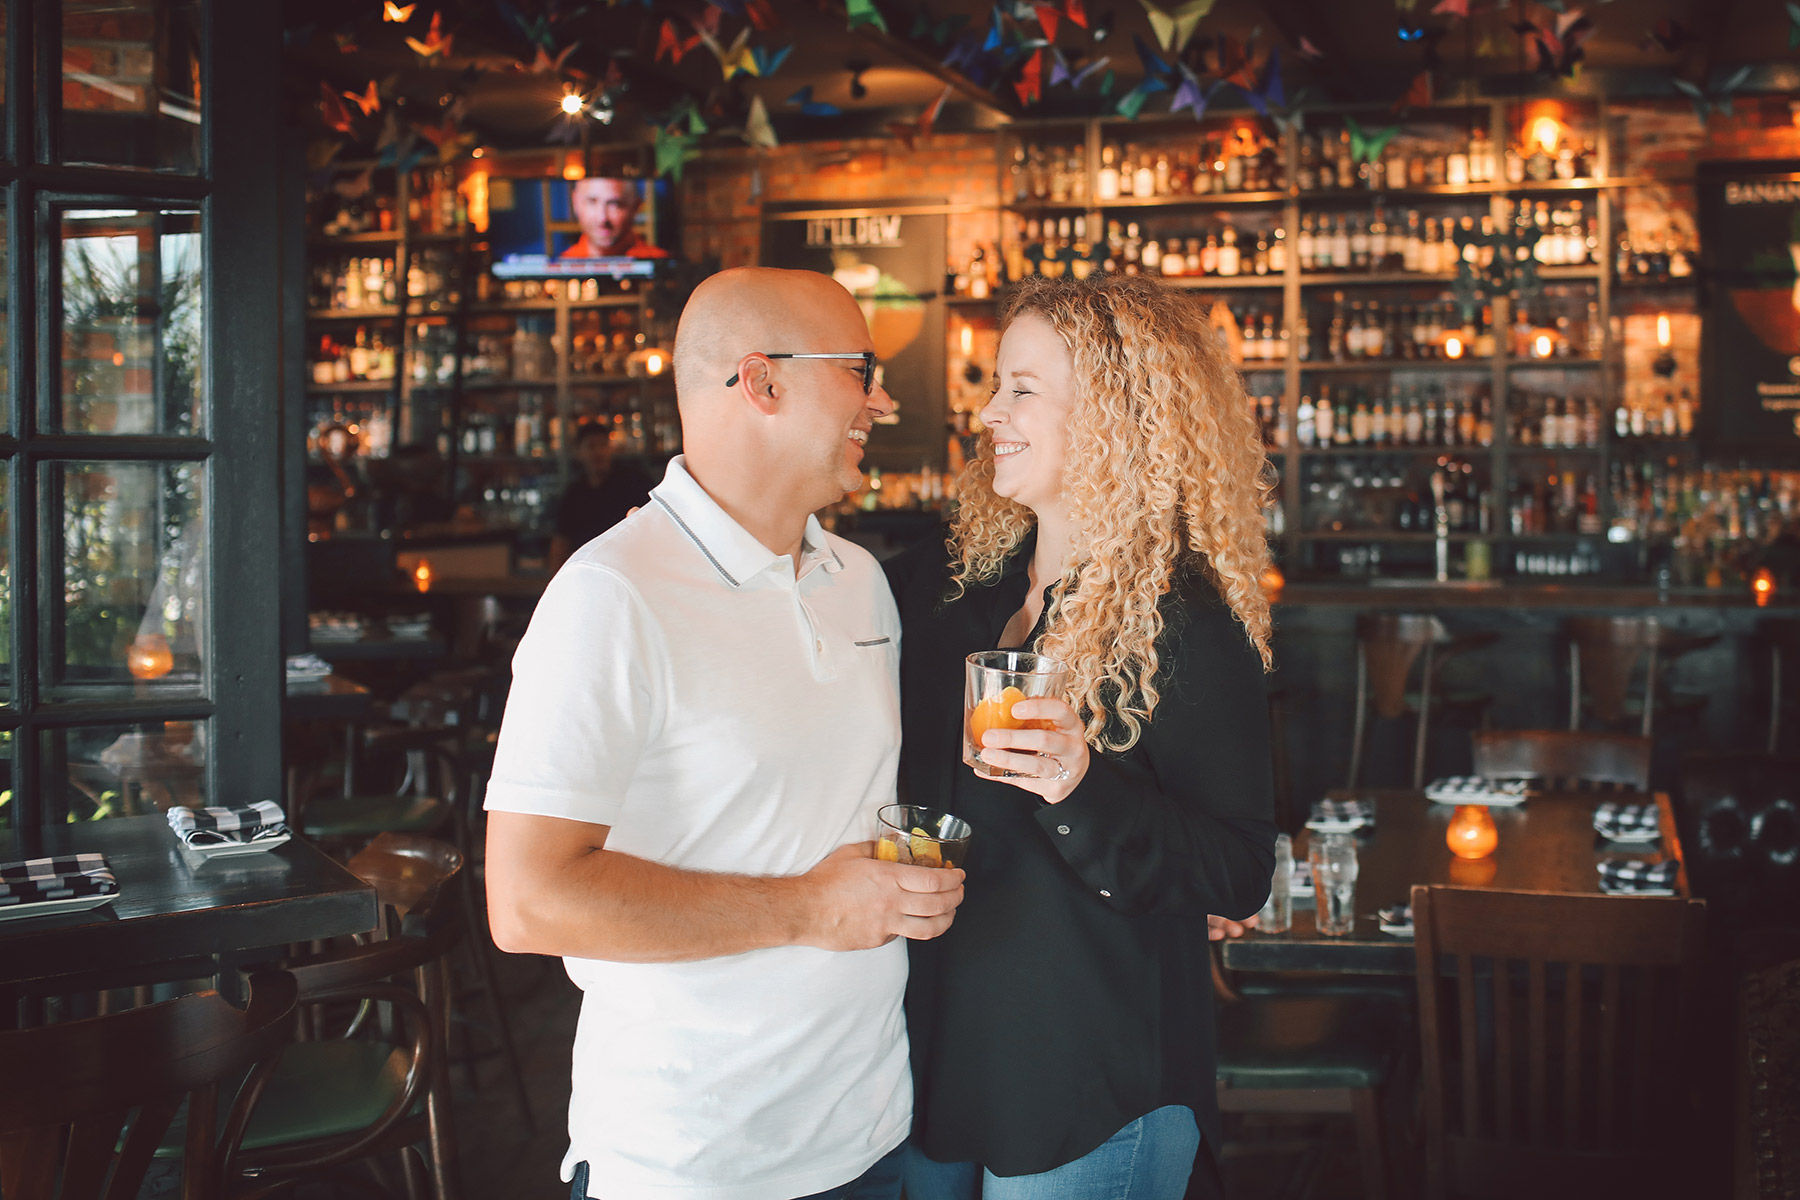 Vick-Photography-Engagement-Session-Bar-Toast-Drinks.jpg